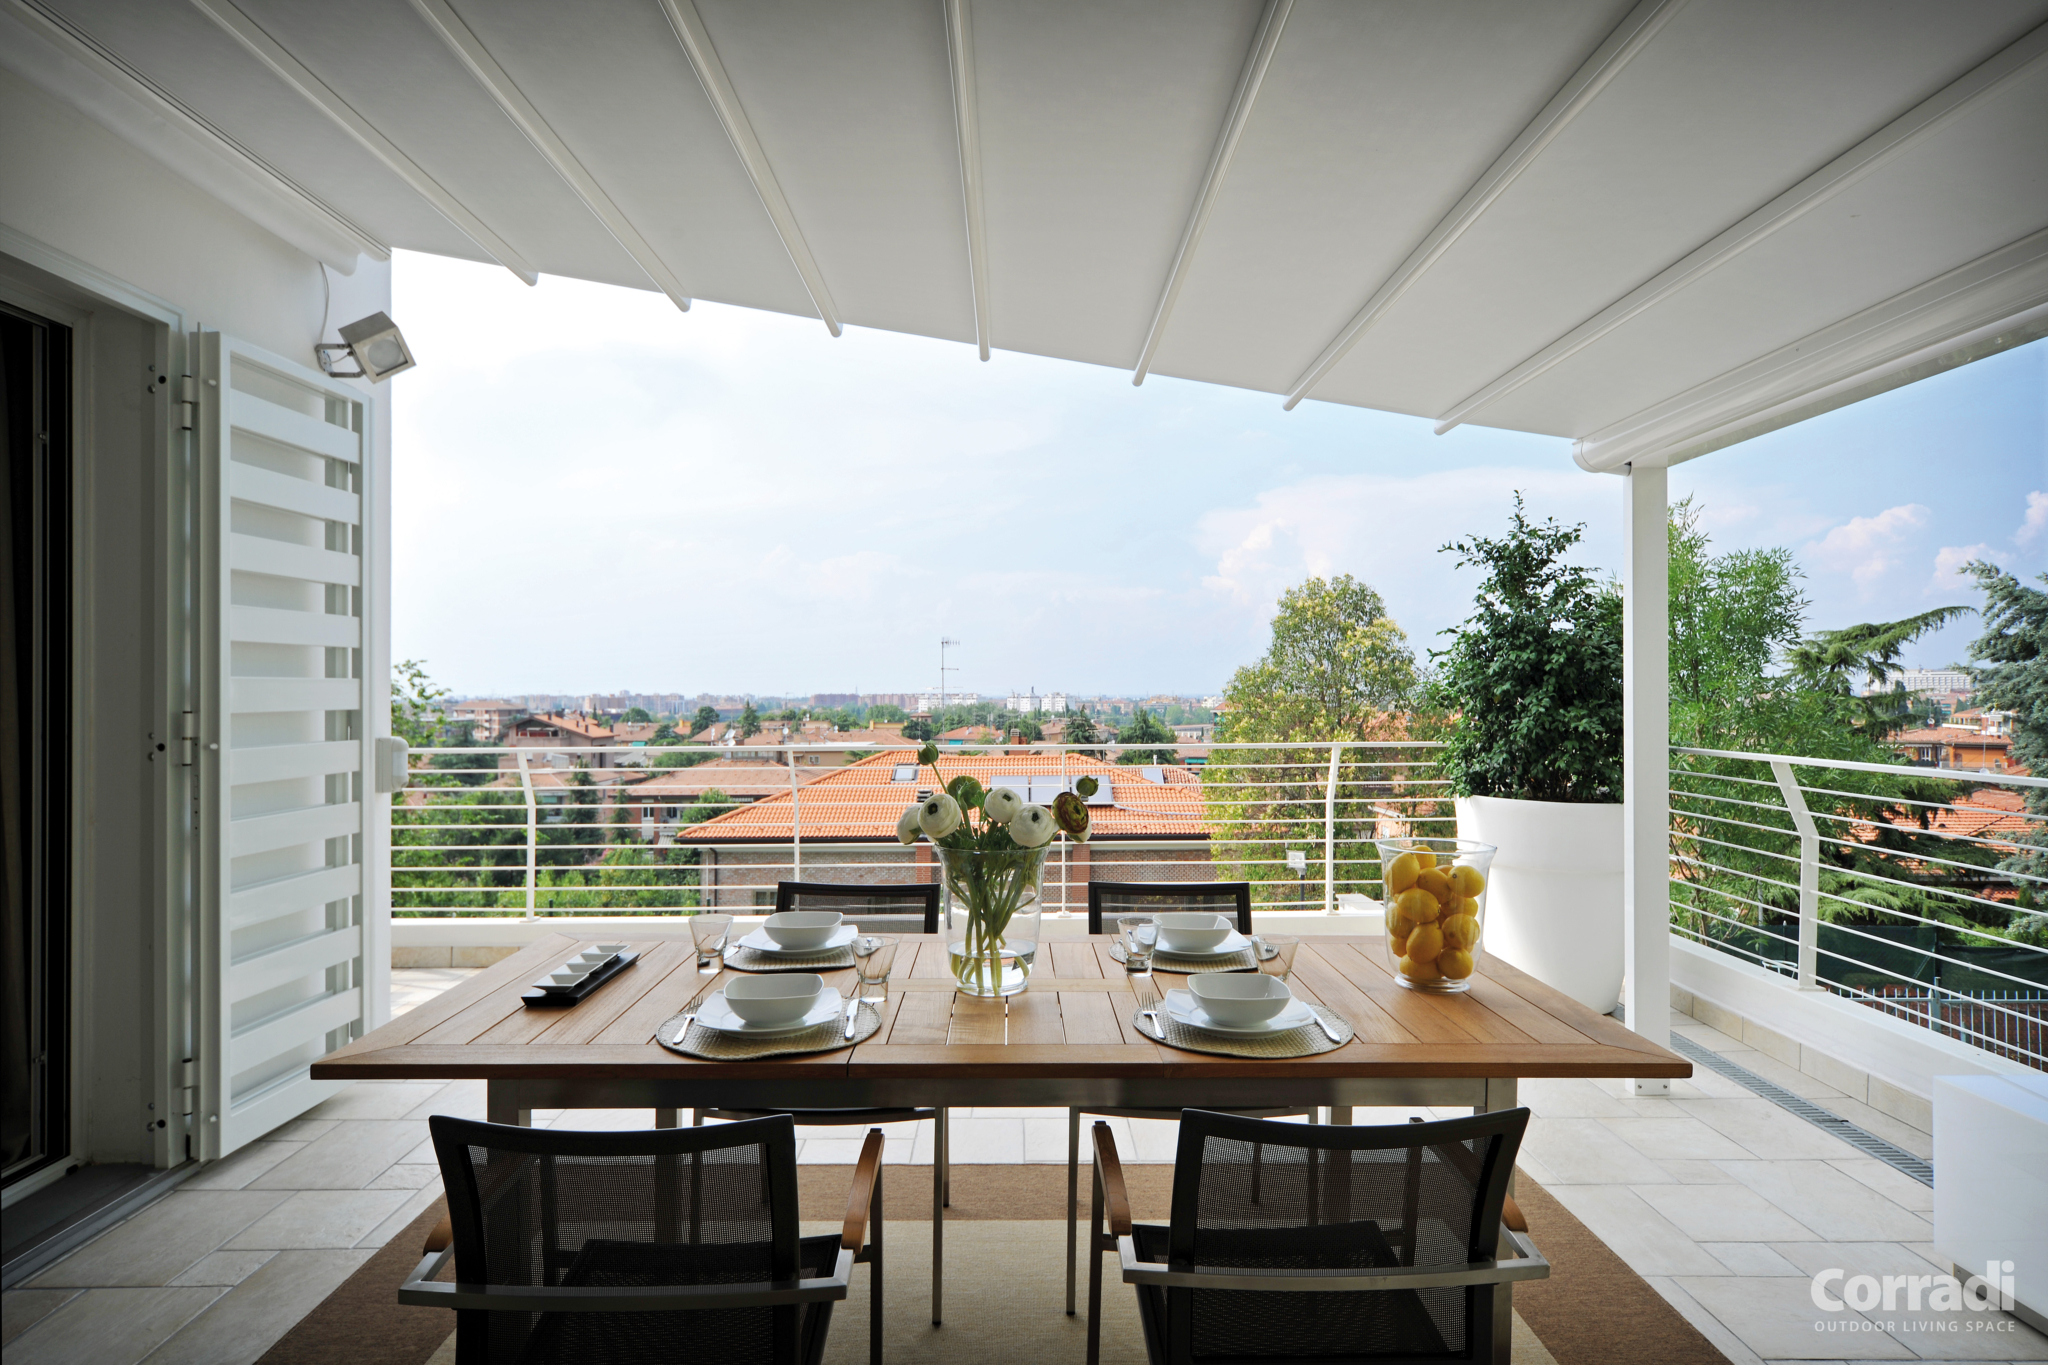 Pacific Rollshutters & Awnings in Victoria: Let us help turn your patio into an all-season retreat!